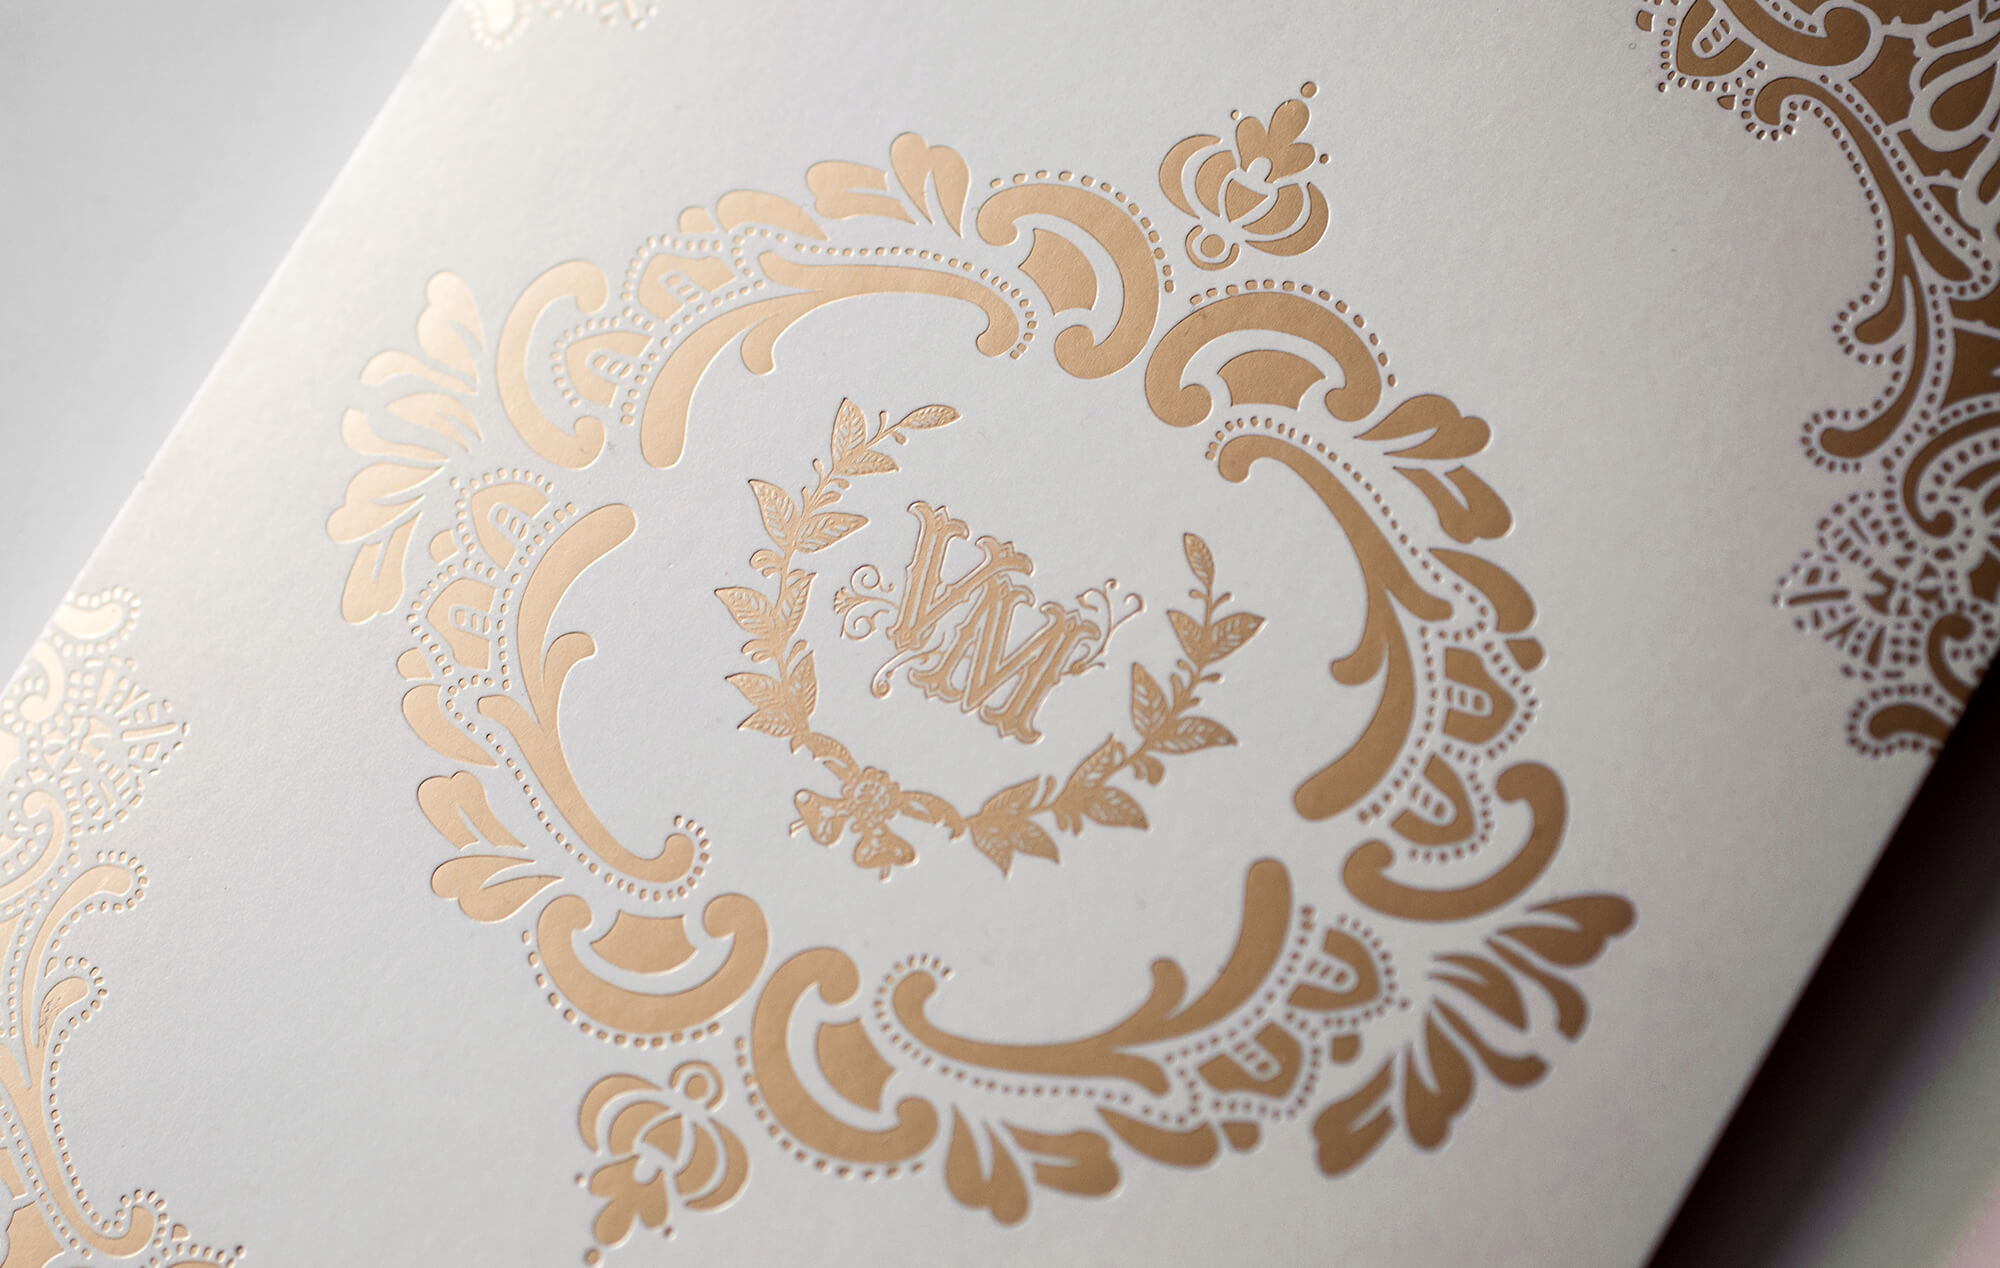 Gold foil monogram and ornate lace border